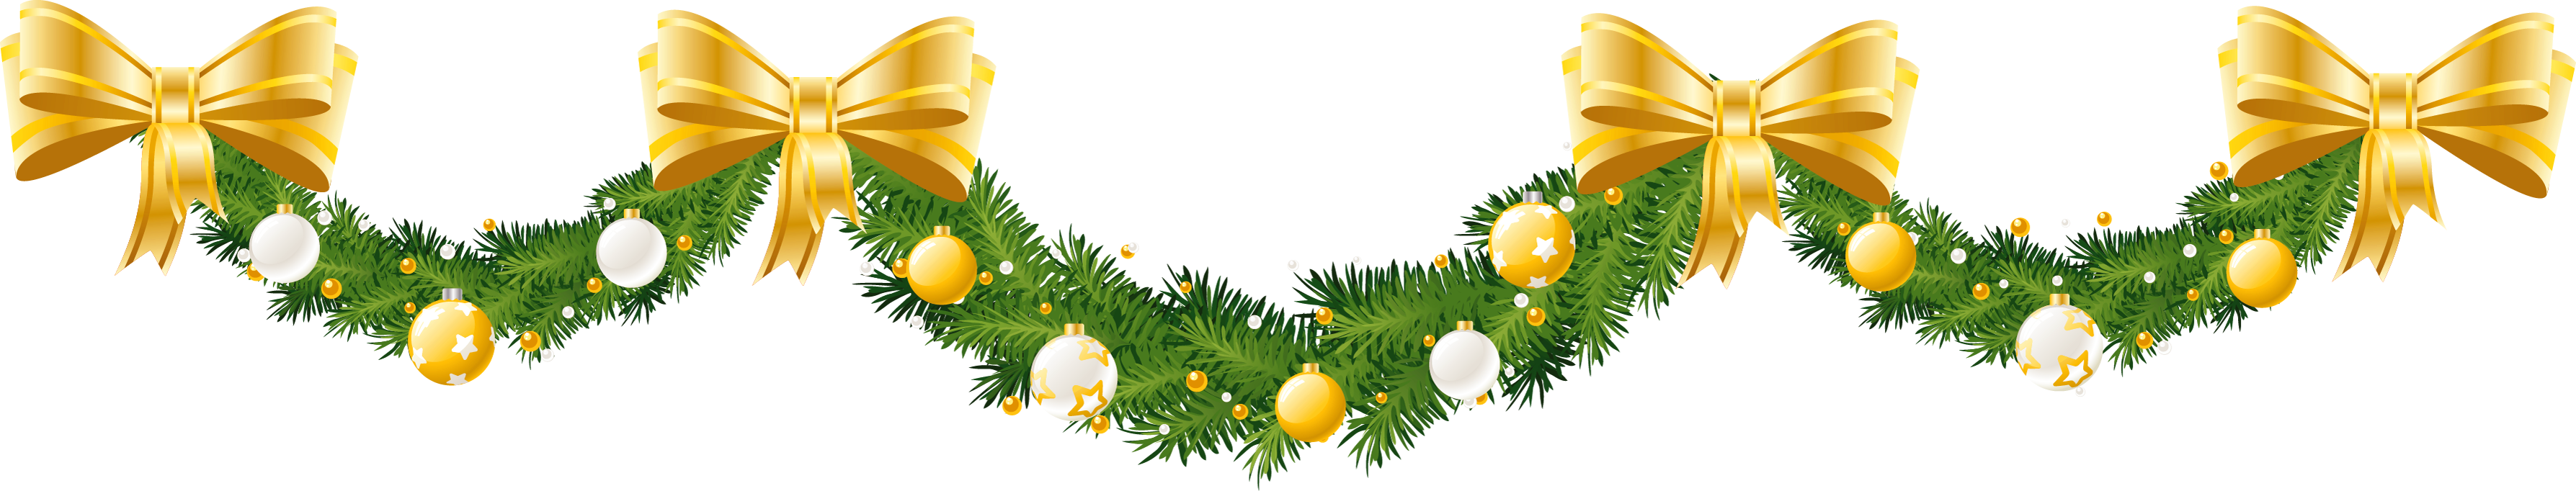 Christmas Garland Clipart.Clipart Christmas Garland Clipart Panda Free Clipart Images